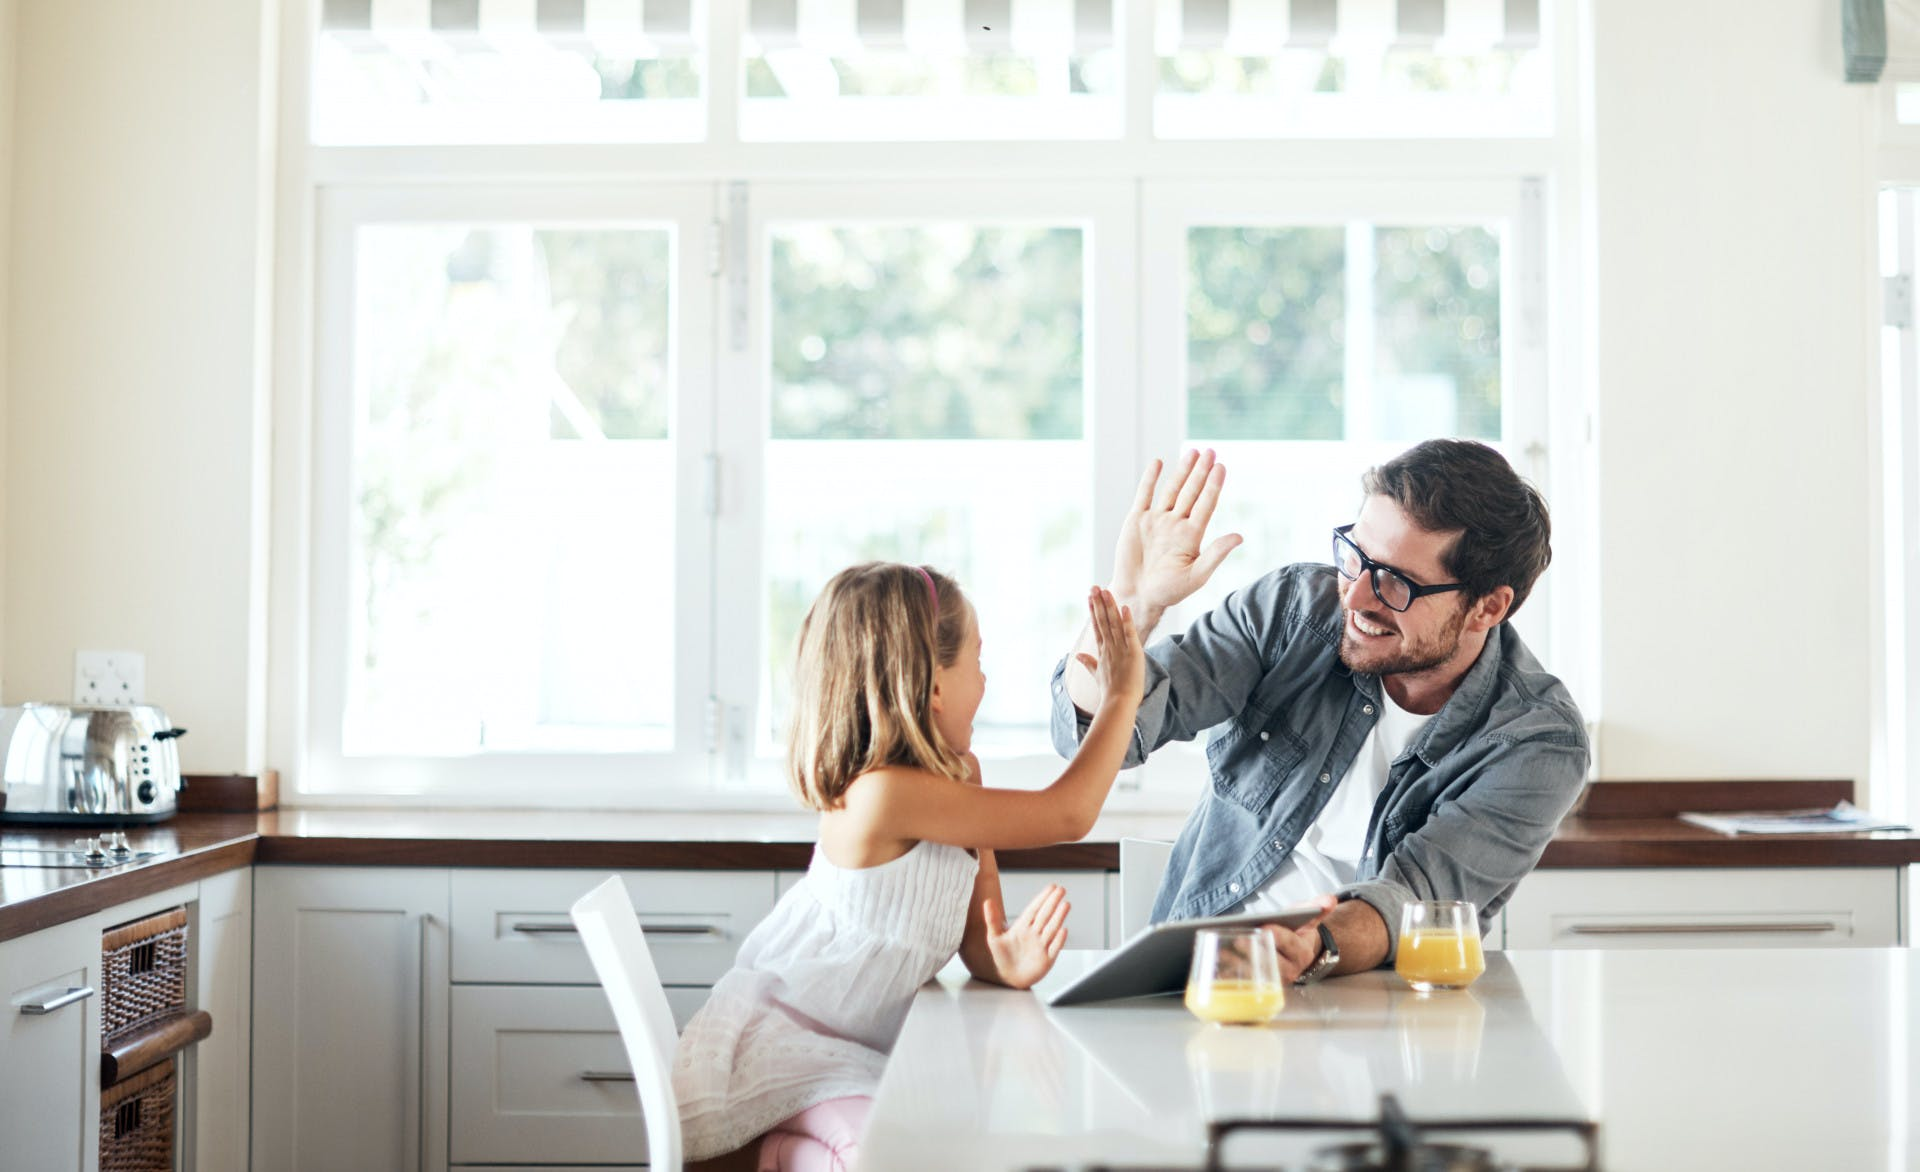 Father and daughter high-fiving